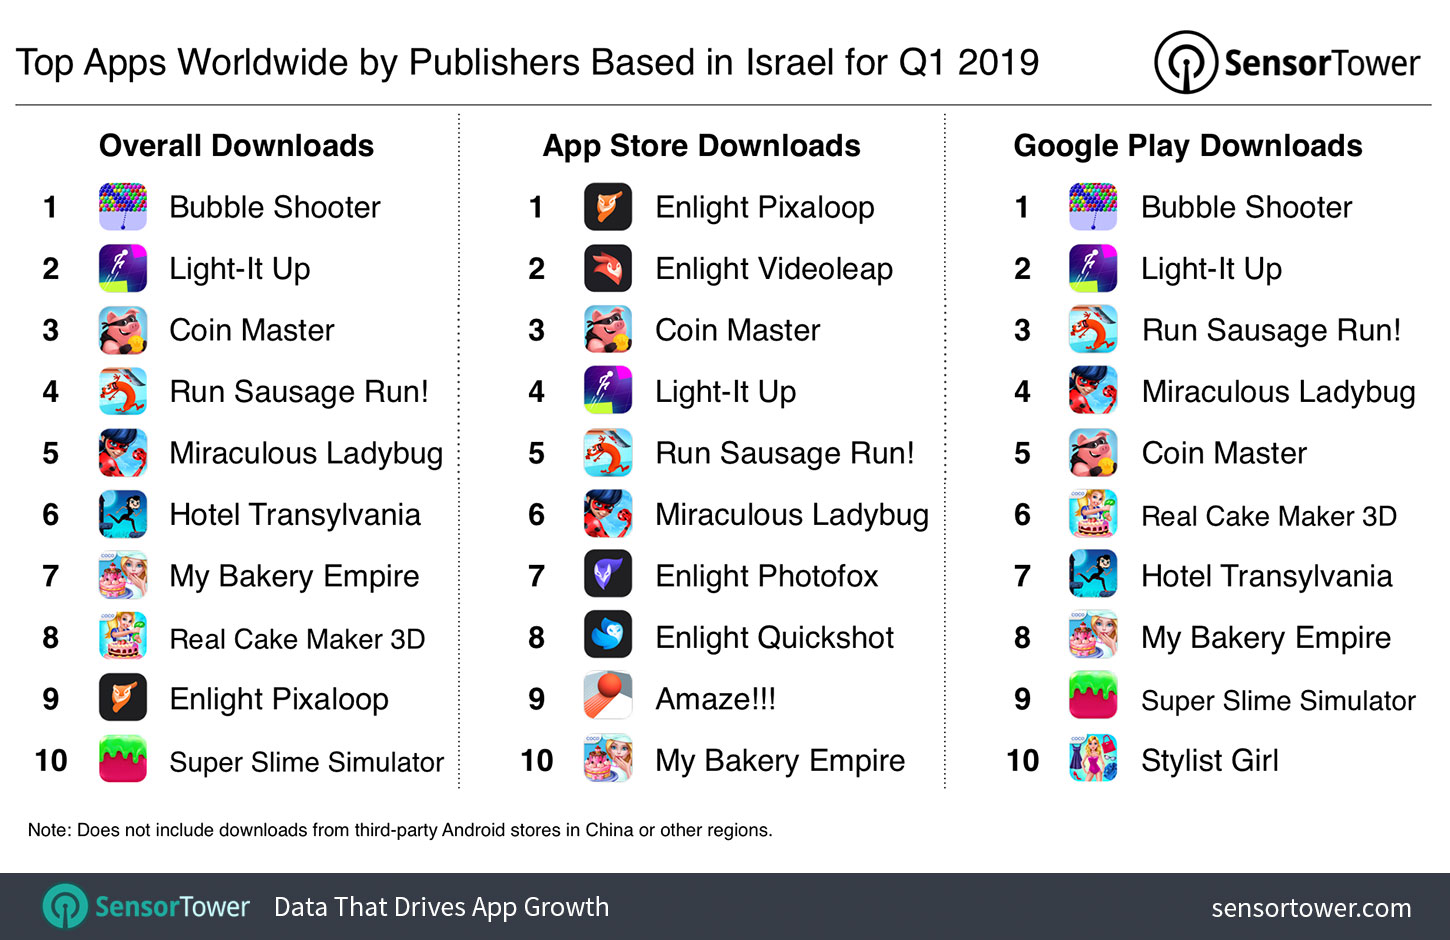 Top Apps Worldwide by Publishers Based in Israel for Q1 2019